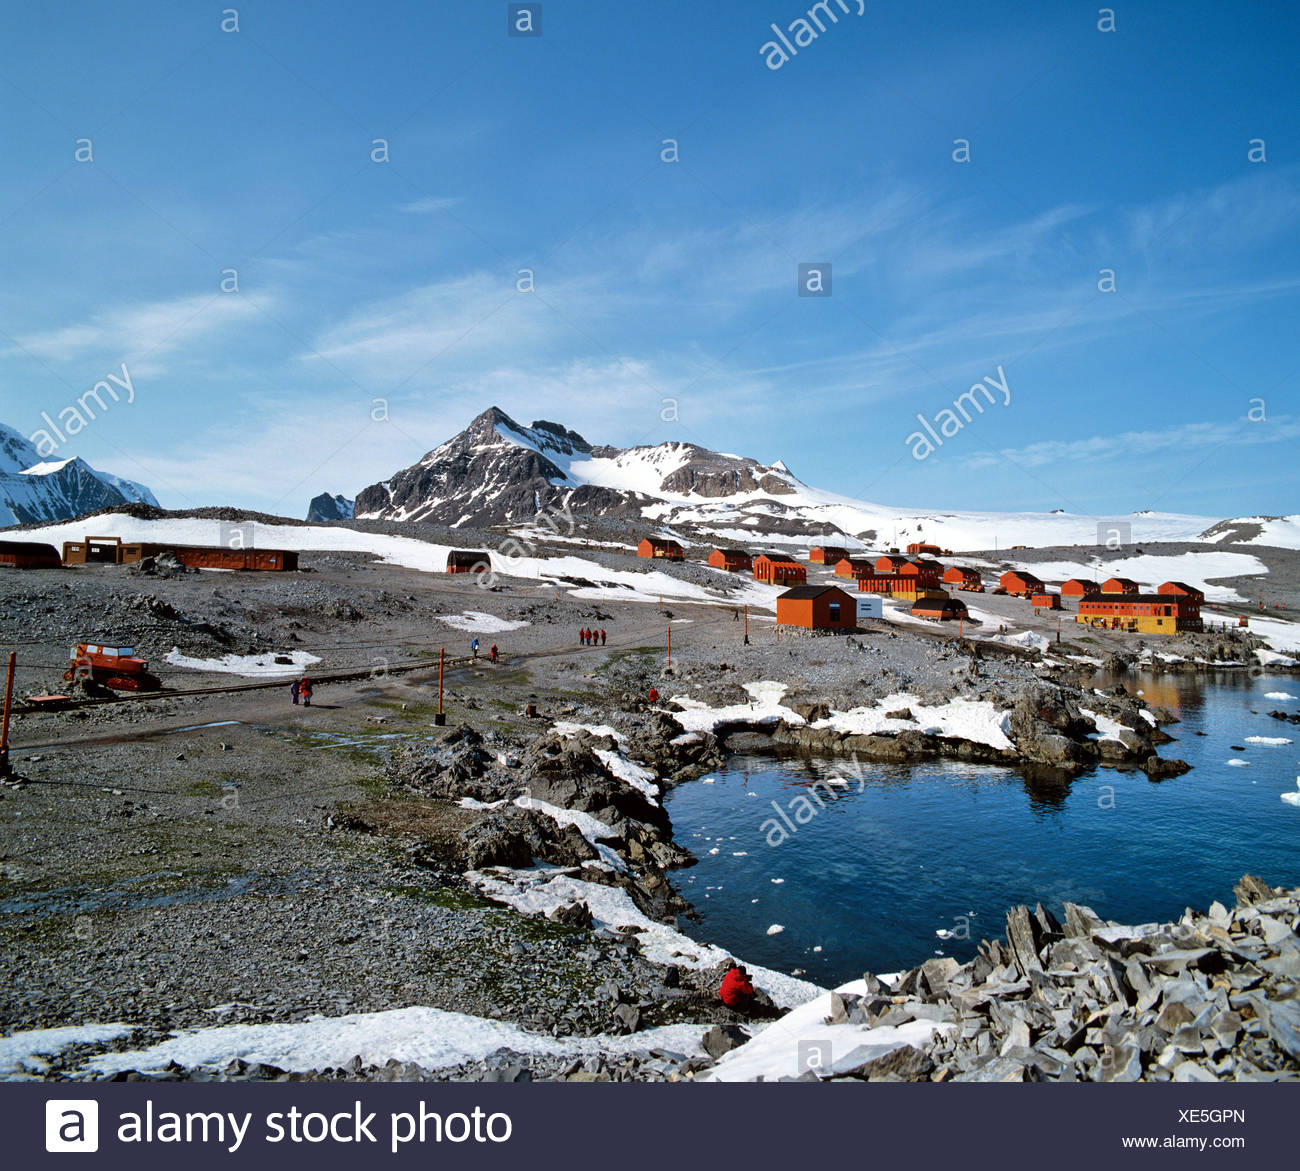 Weddell Sea, Hope Bay, small bay on the north end of the Antarctic peninsula, Argentinian research centre Esperanza, Antarctic - Stock Image